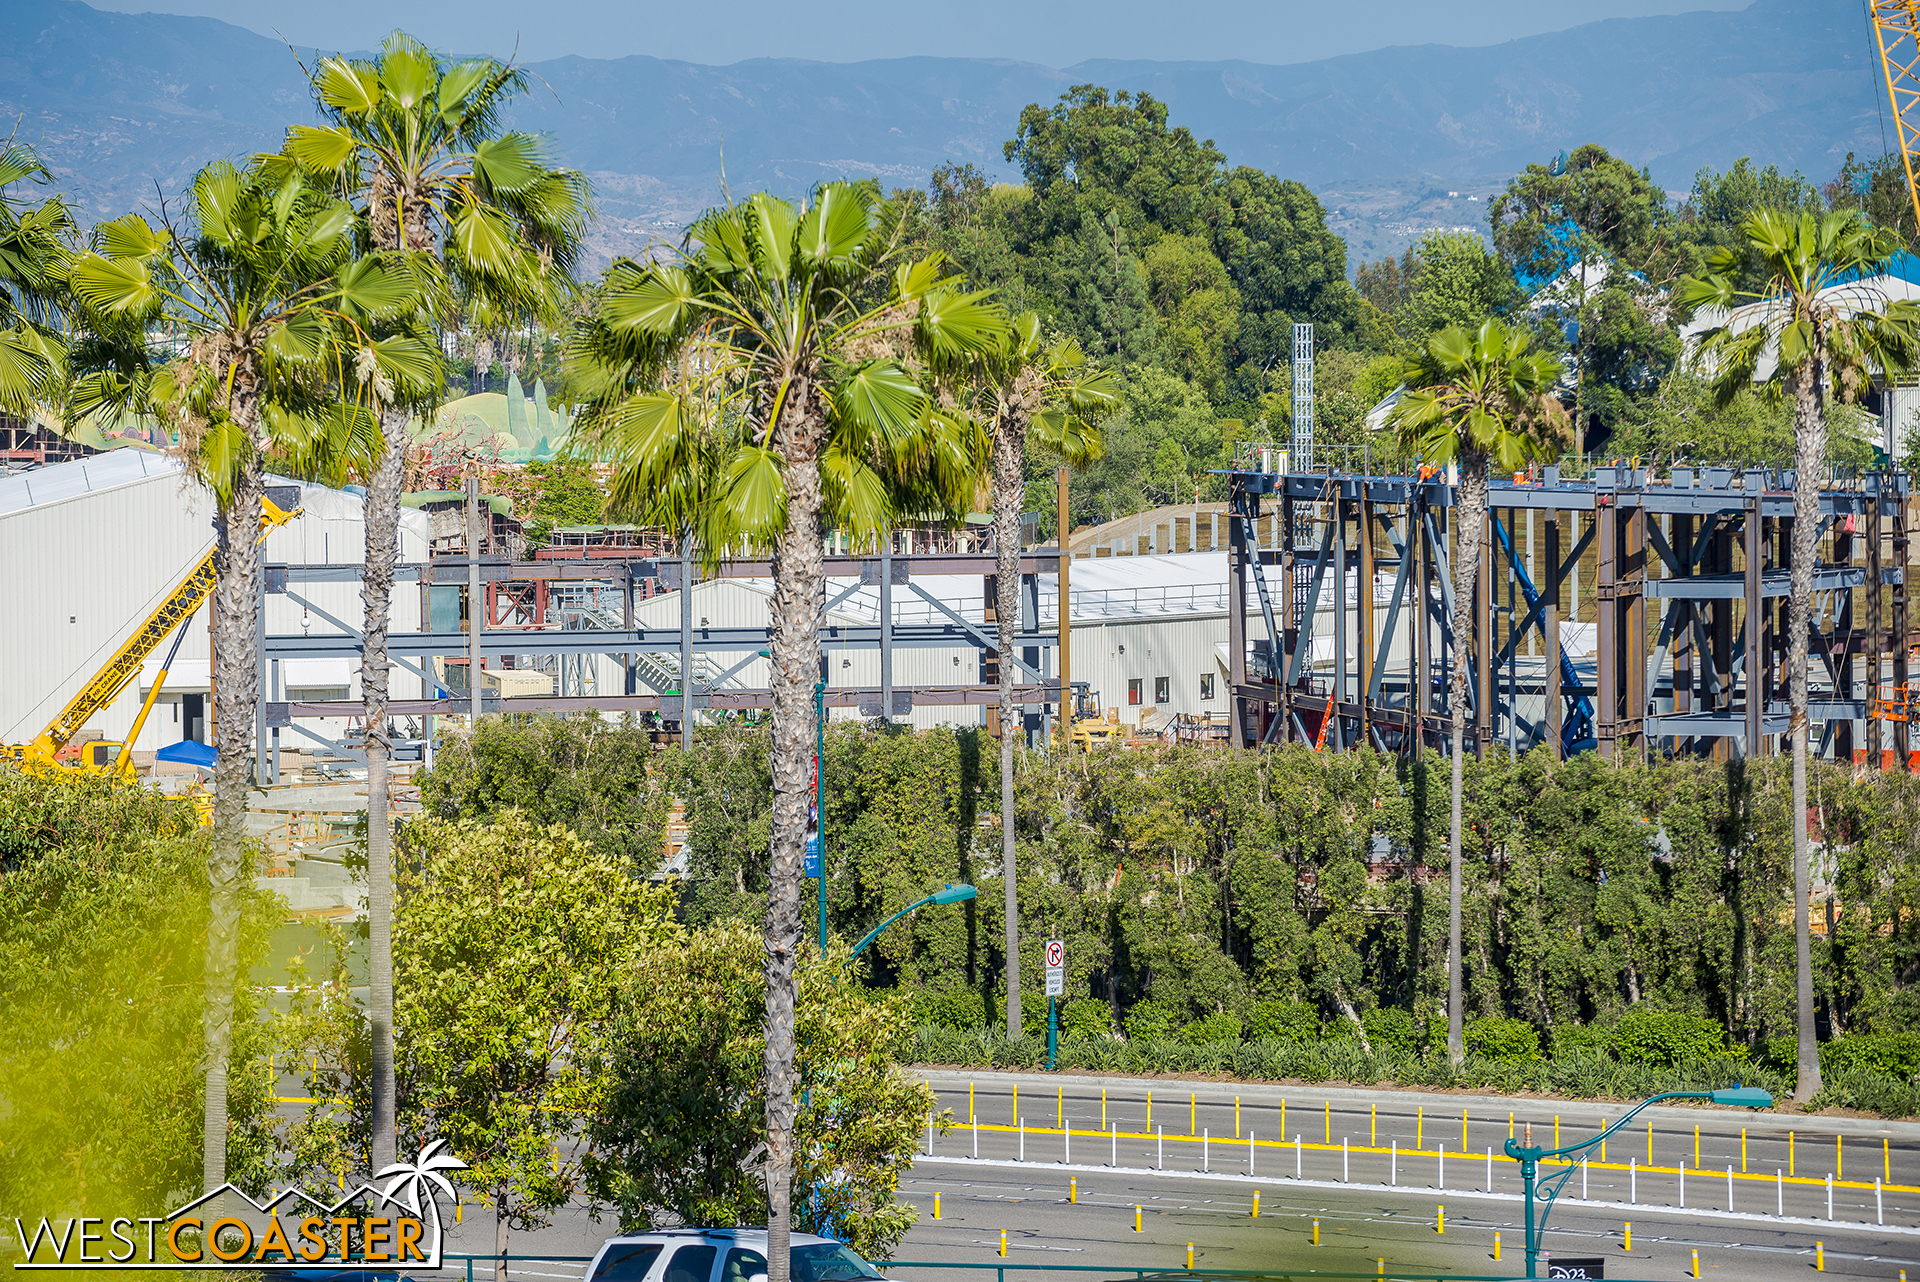 As you can see, a semblance of a building is starting to appear here at for the future Millennium Force ride.